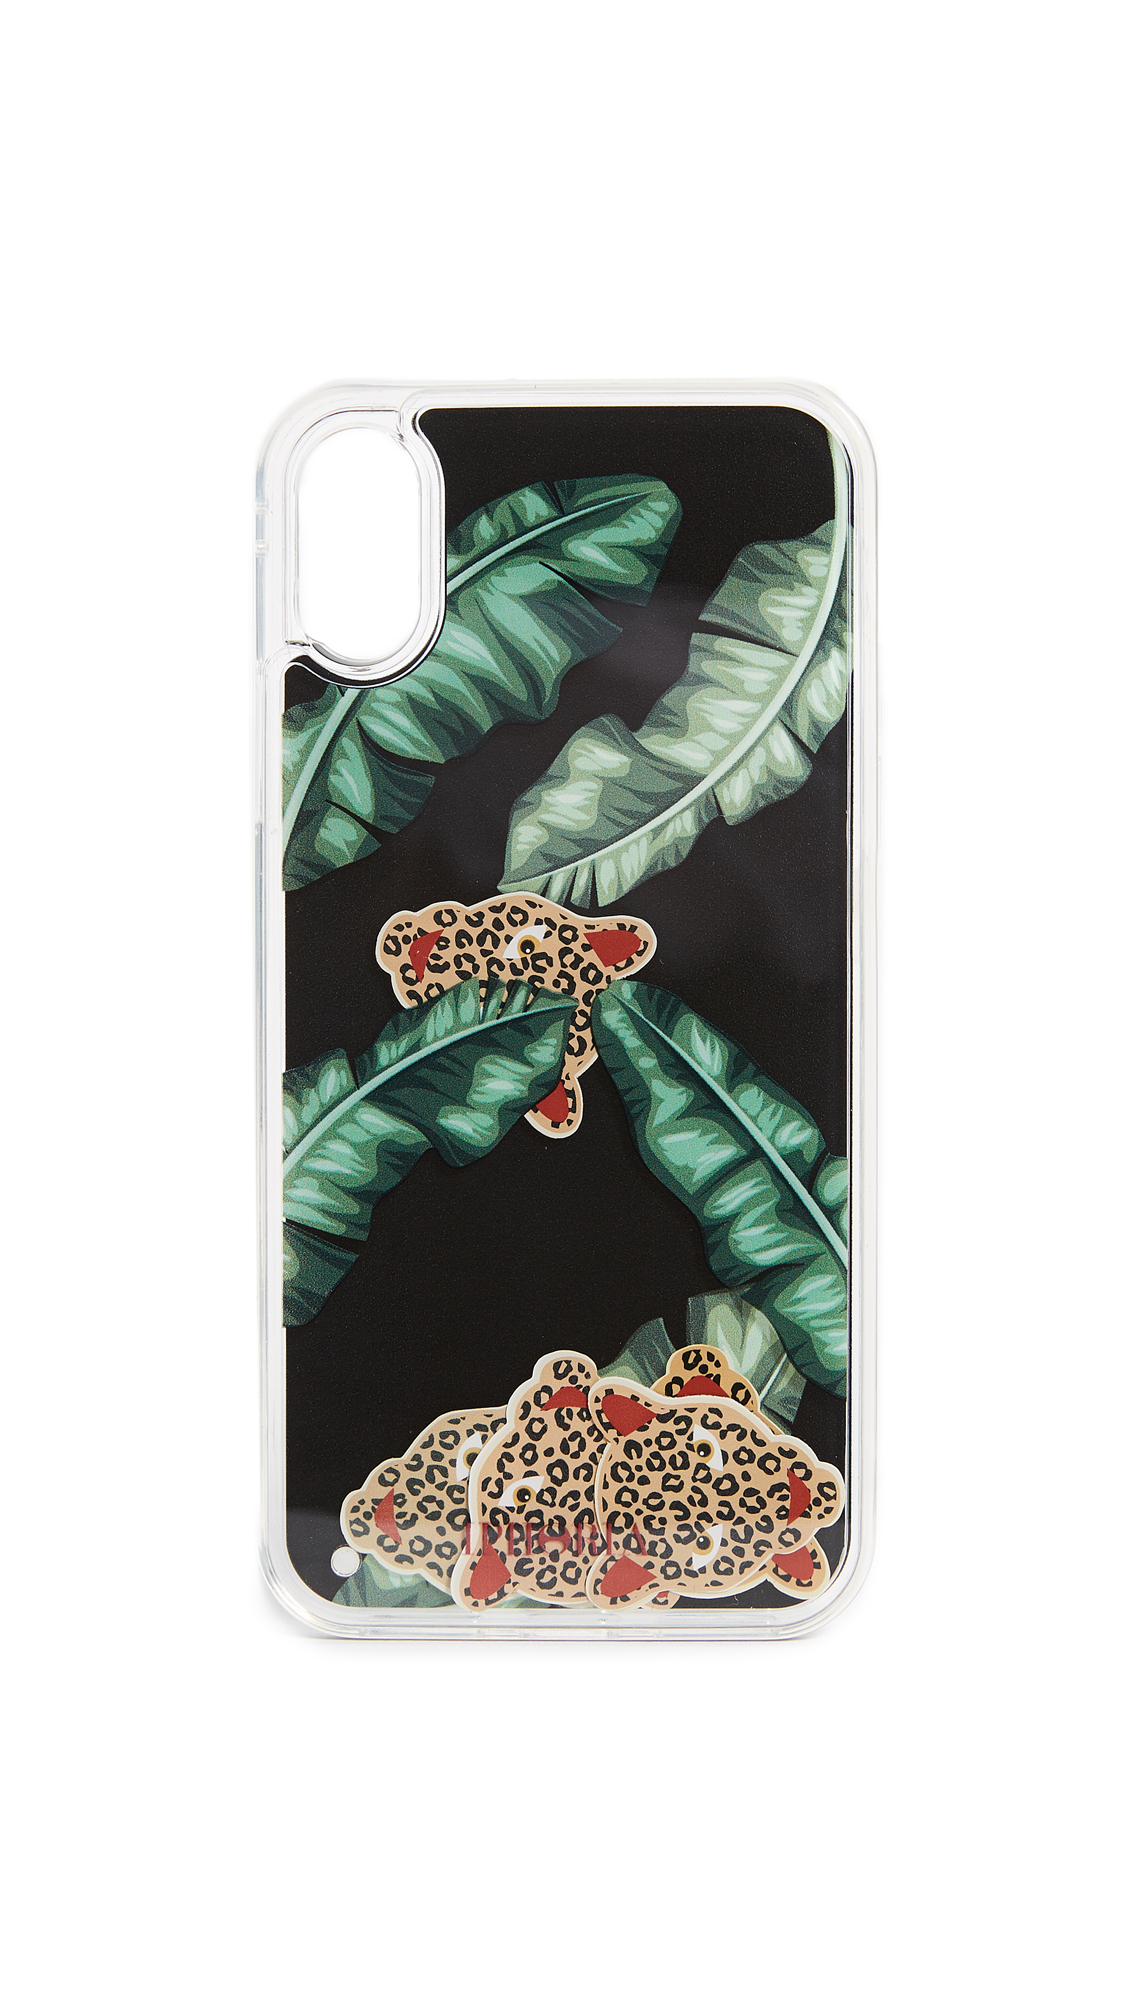 Iphoria Jungle Black iPhone X Case